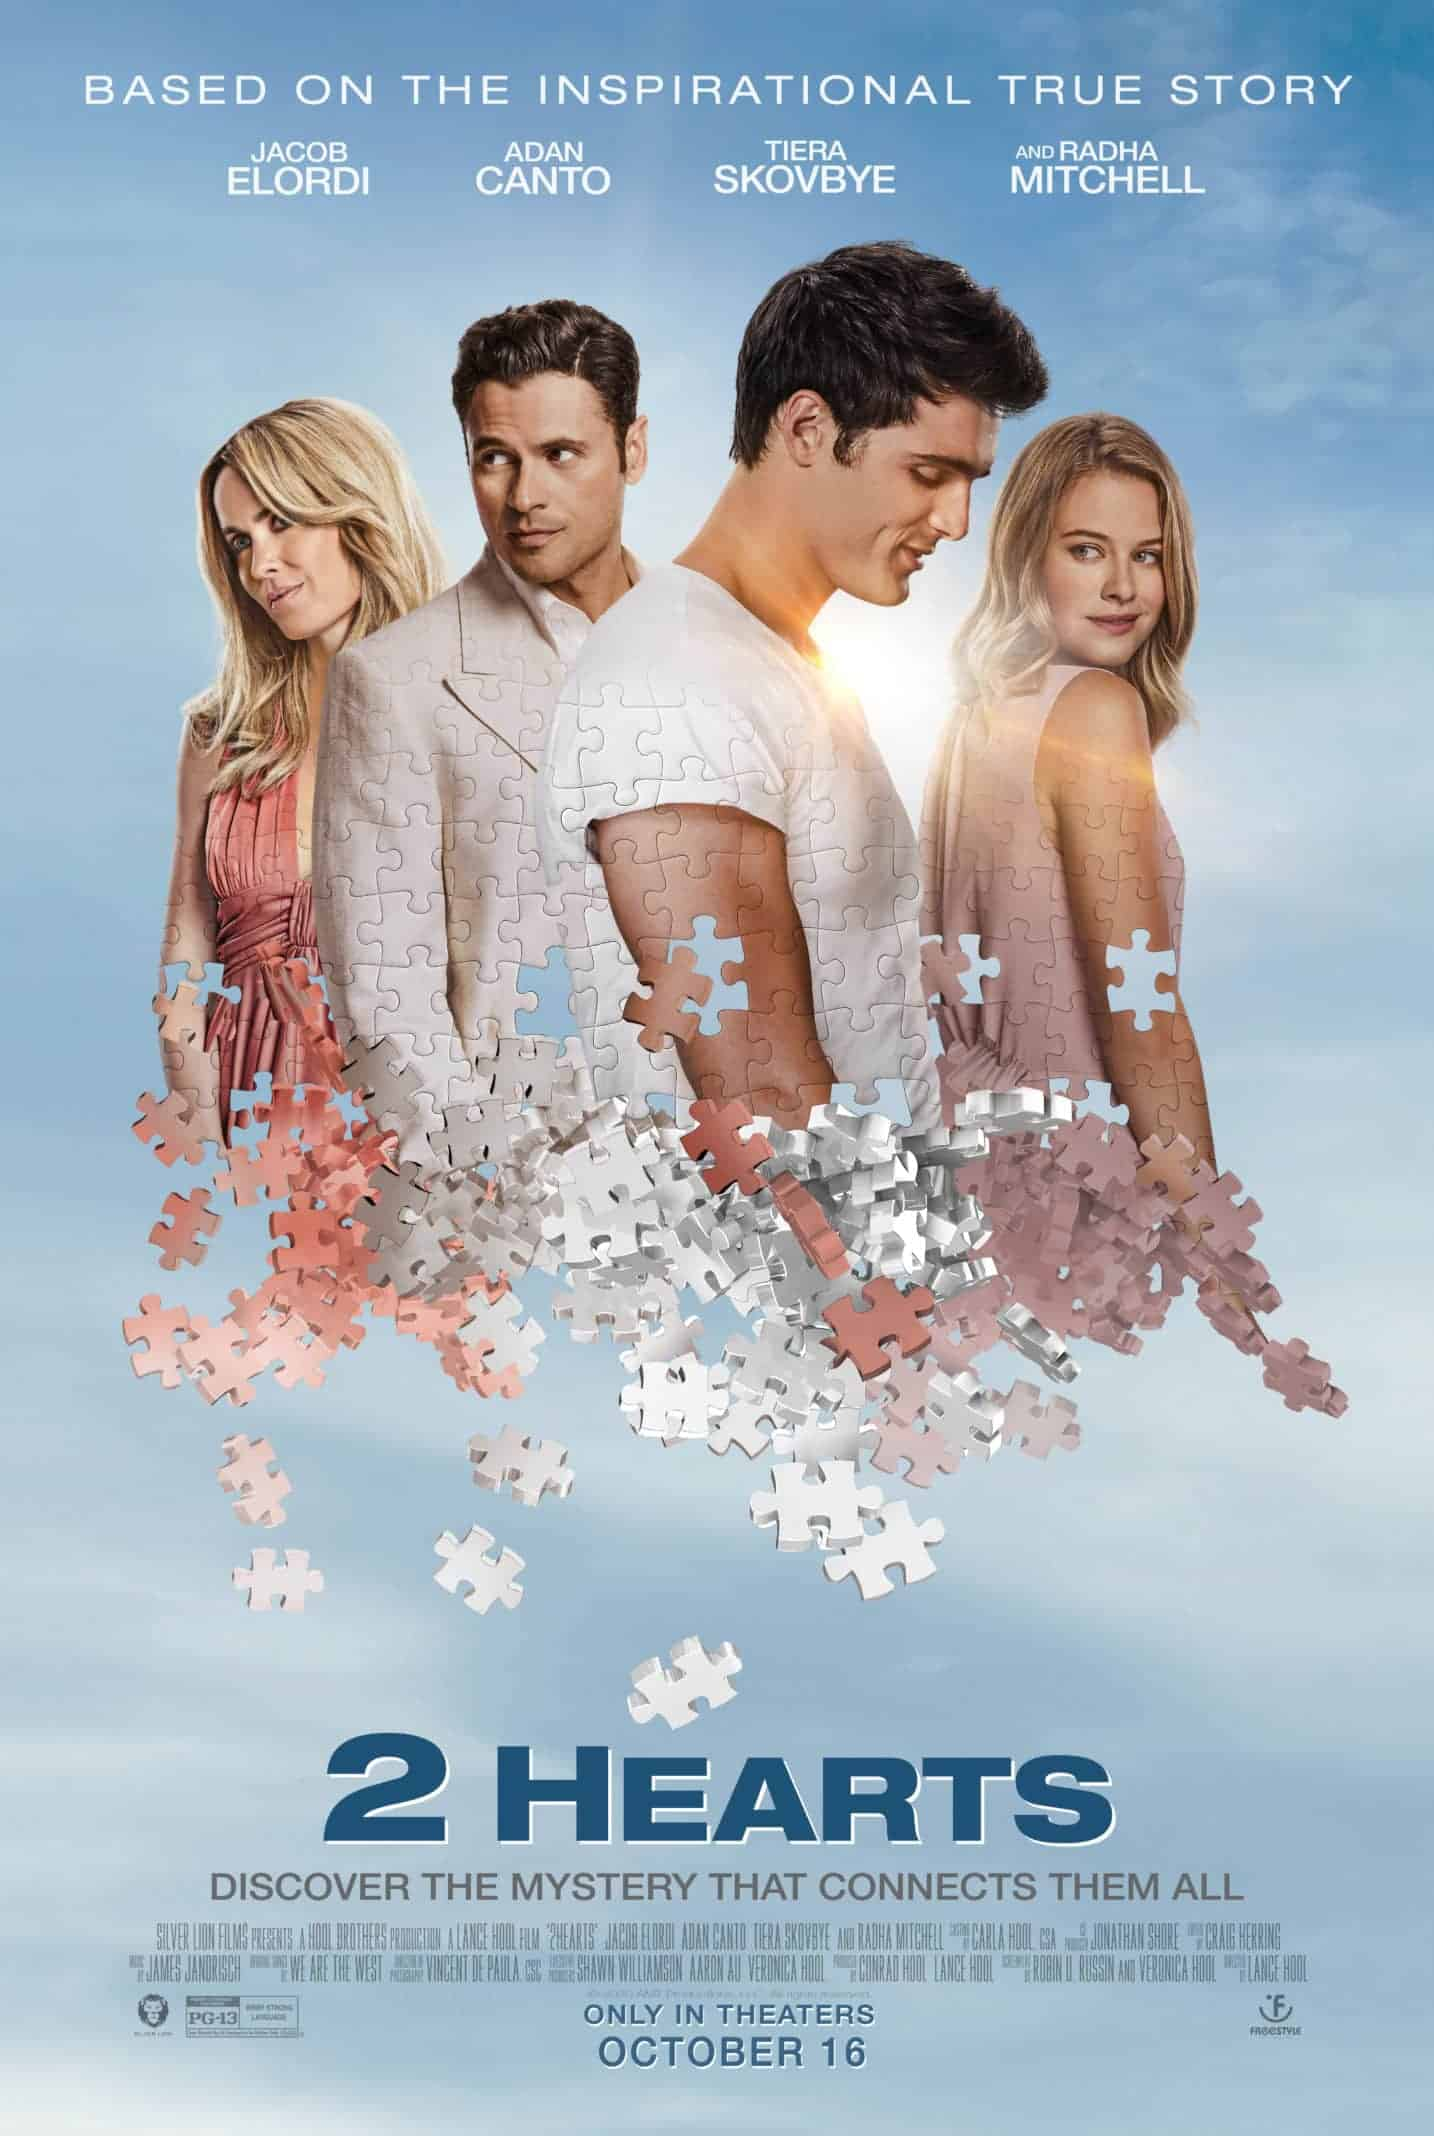 2 Hearts movie poster featuring Jorge (Adan Canto) and Leslie (Radha Mitchell), as well as Sam (Tiera Skovbye) and Chris (Jacob Elordi)